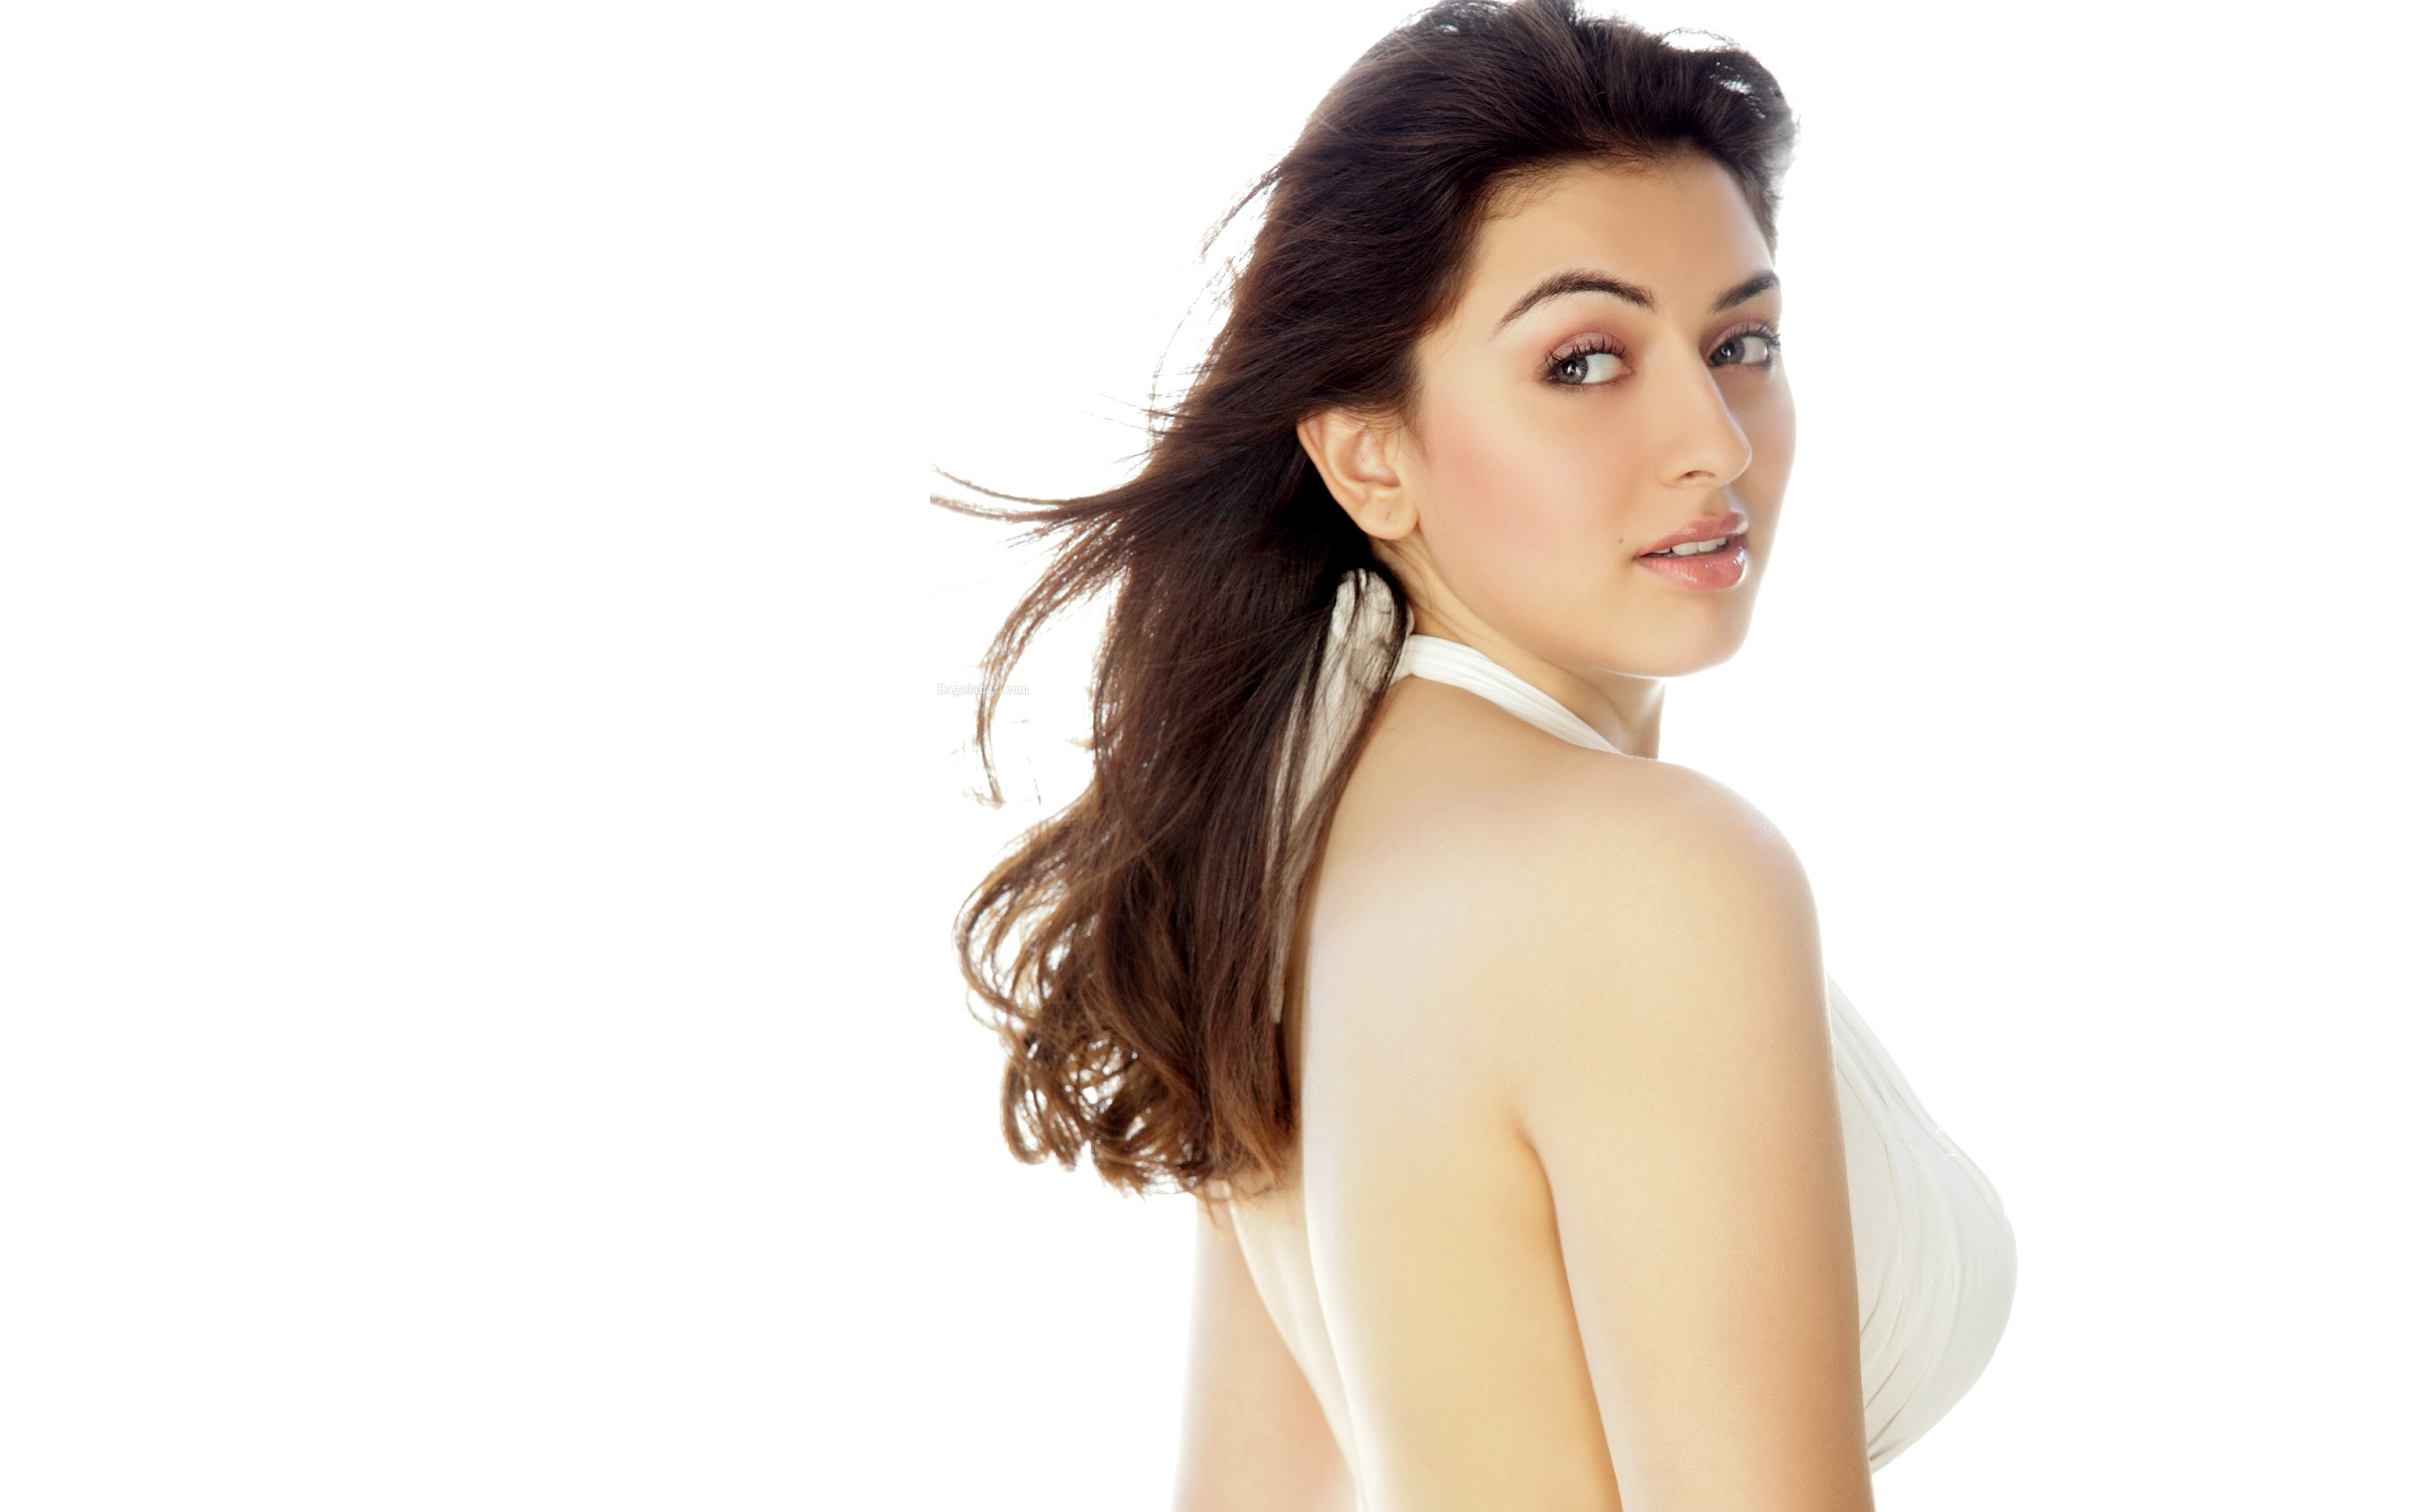 actress hansika wallpapers in jpg format for free download